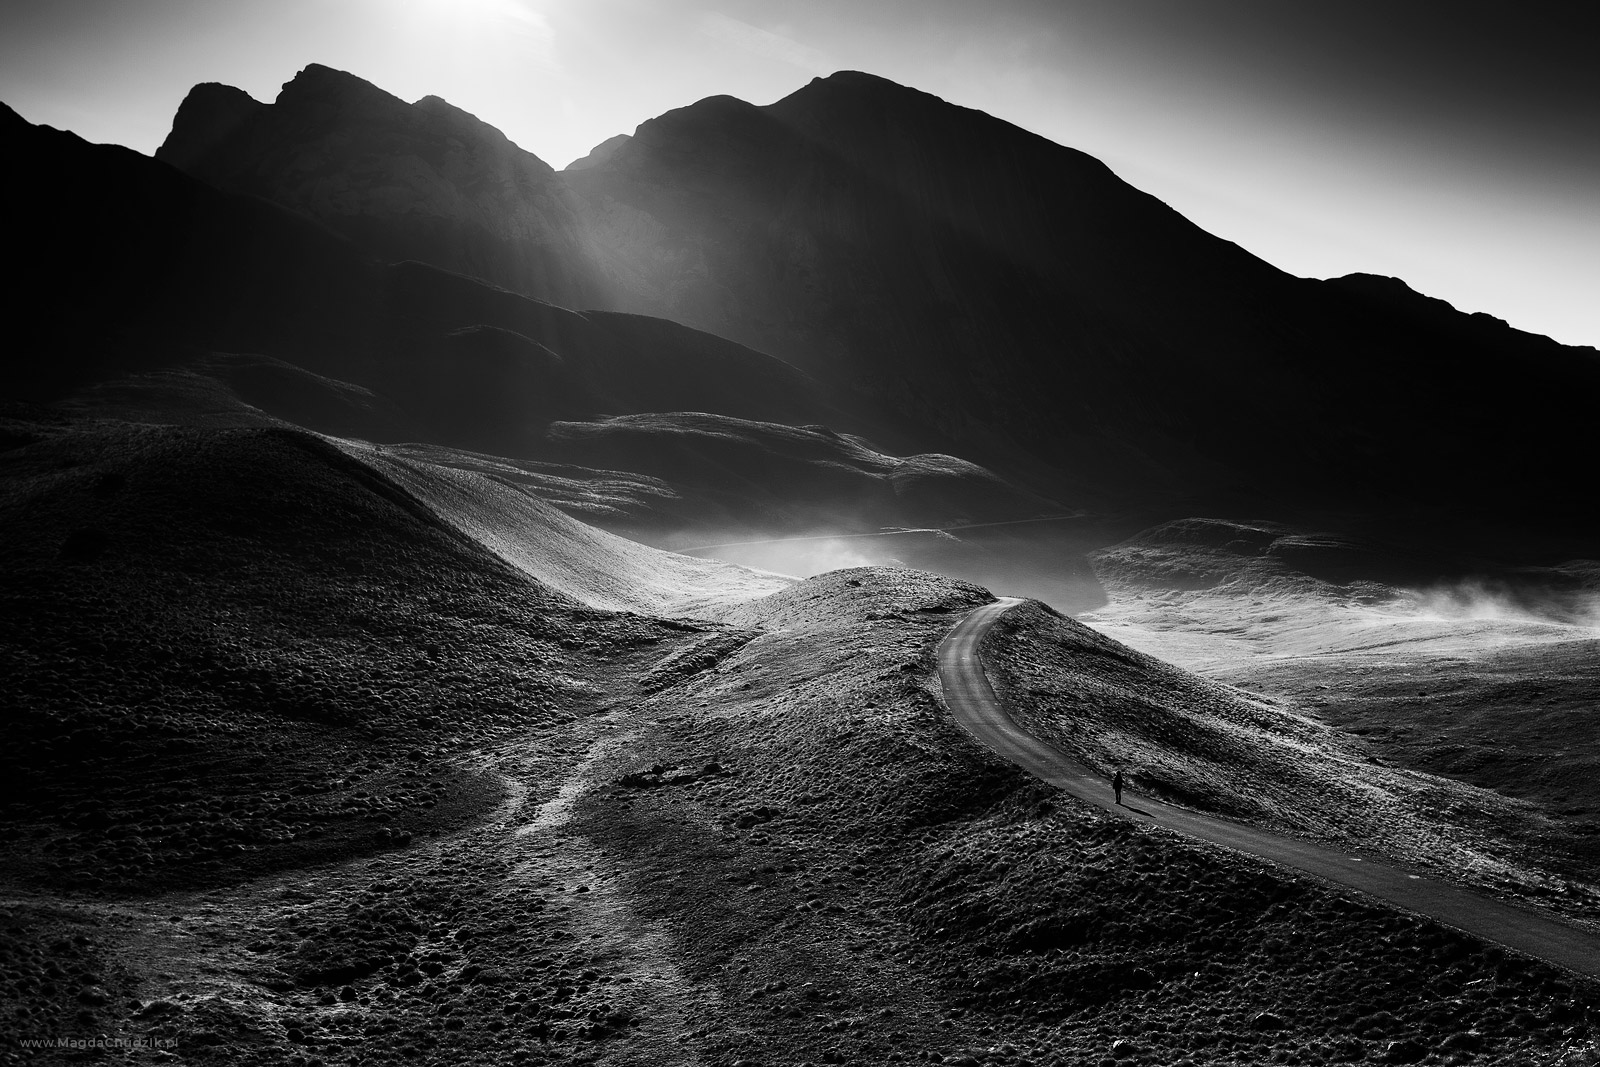 magda-chudzik-black-and-white-landscape-photography-21